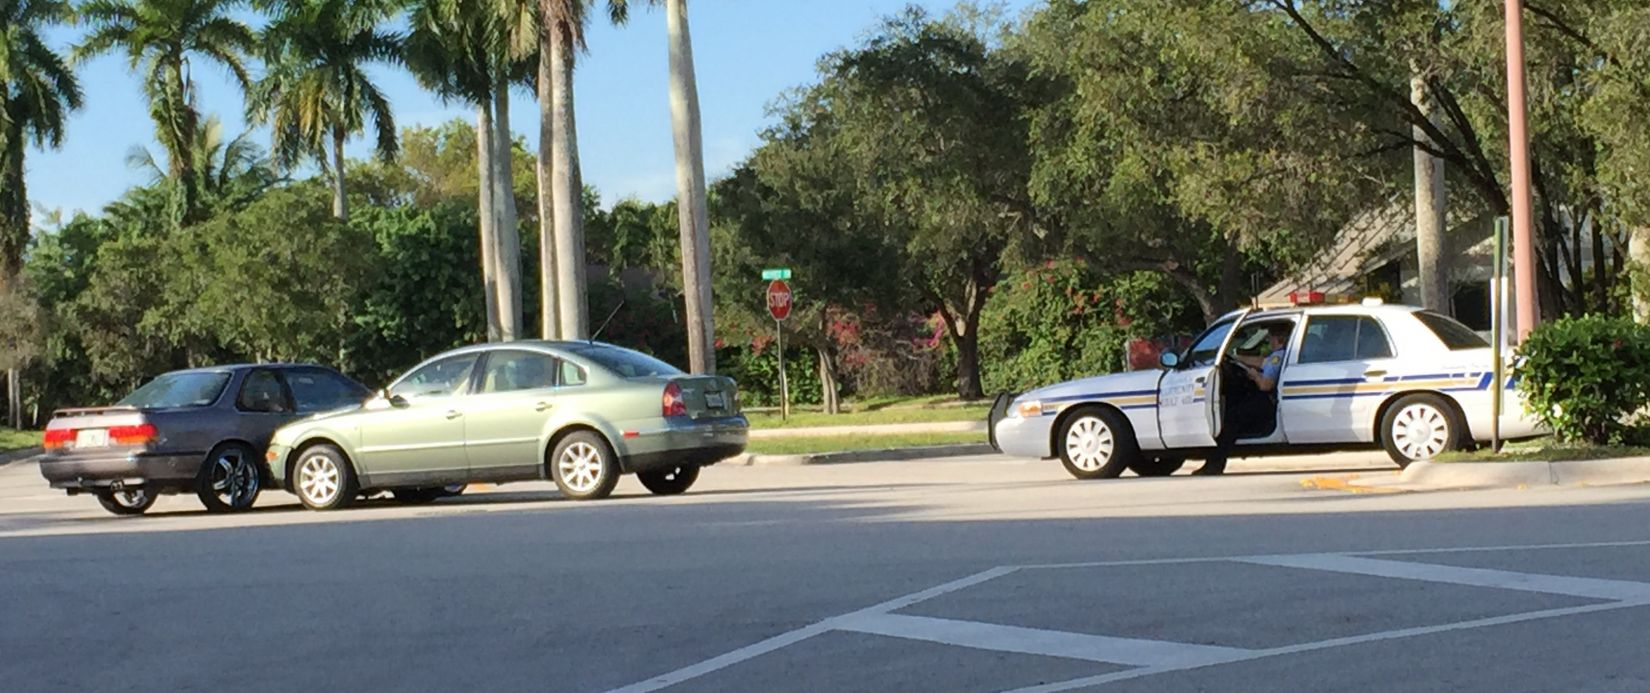 Car collision chiropractor, Plantation, FL  33324